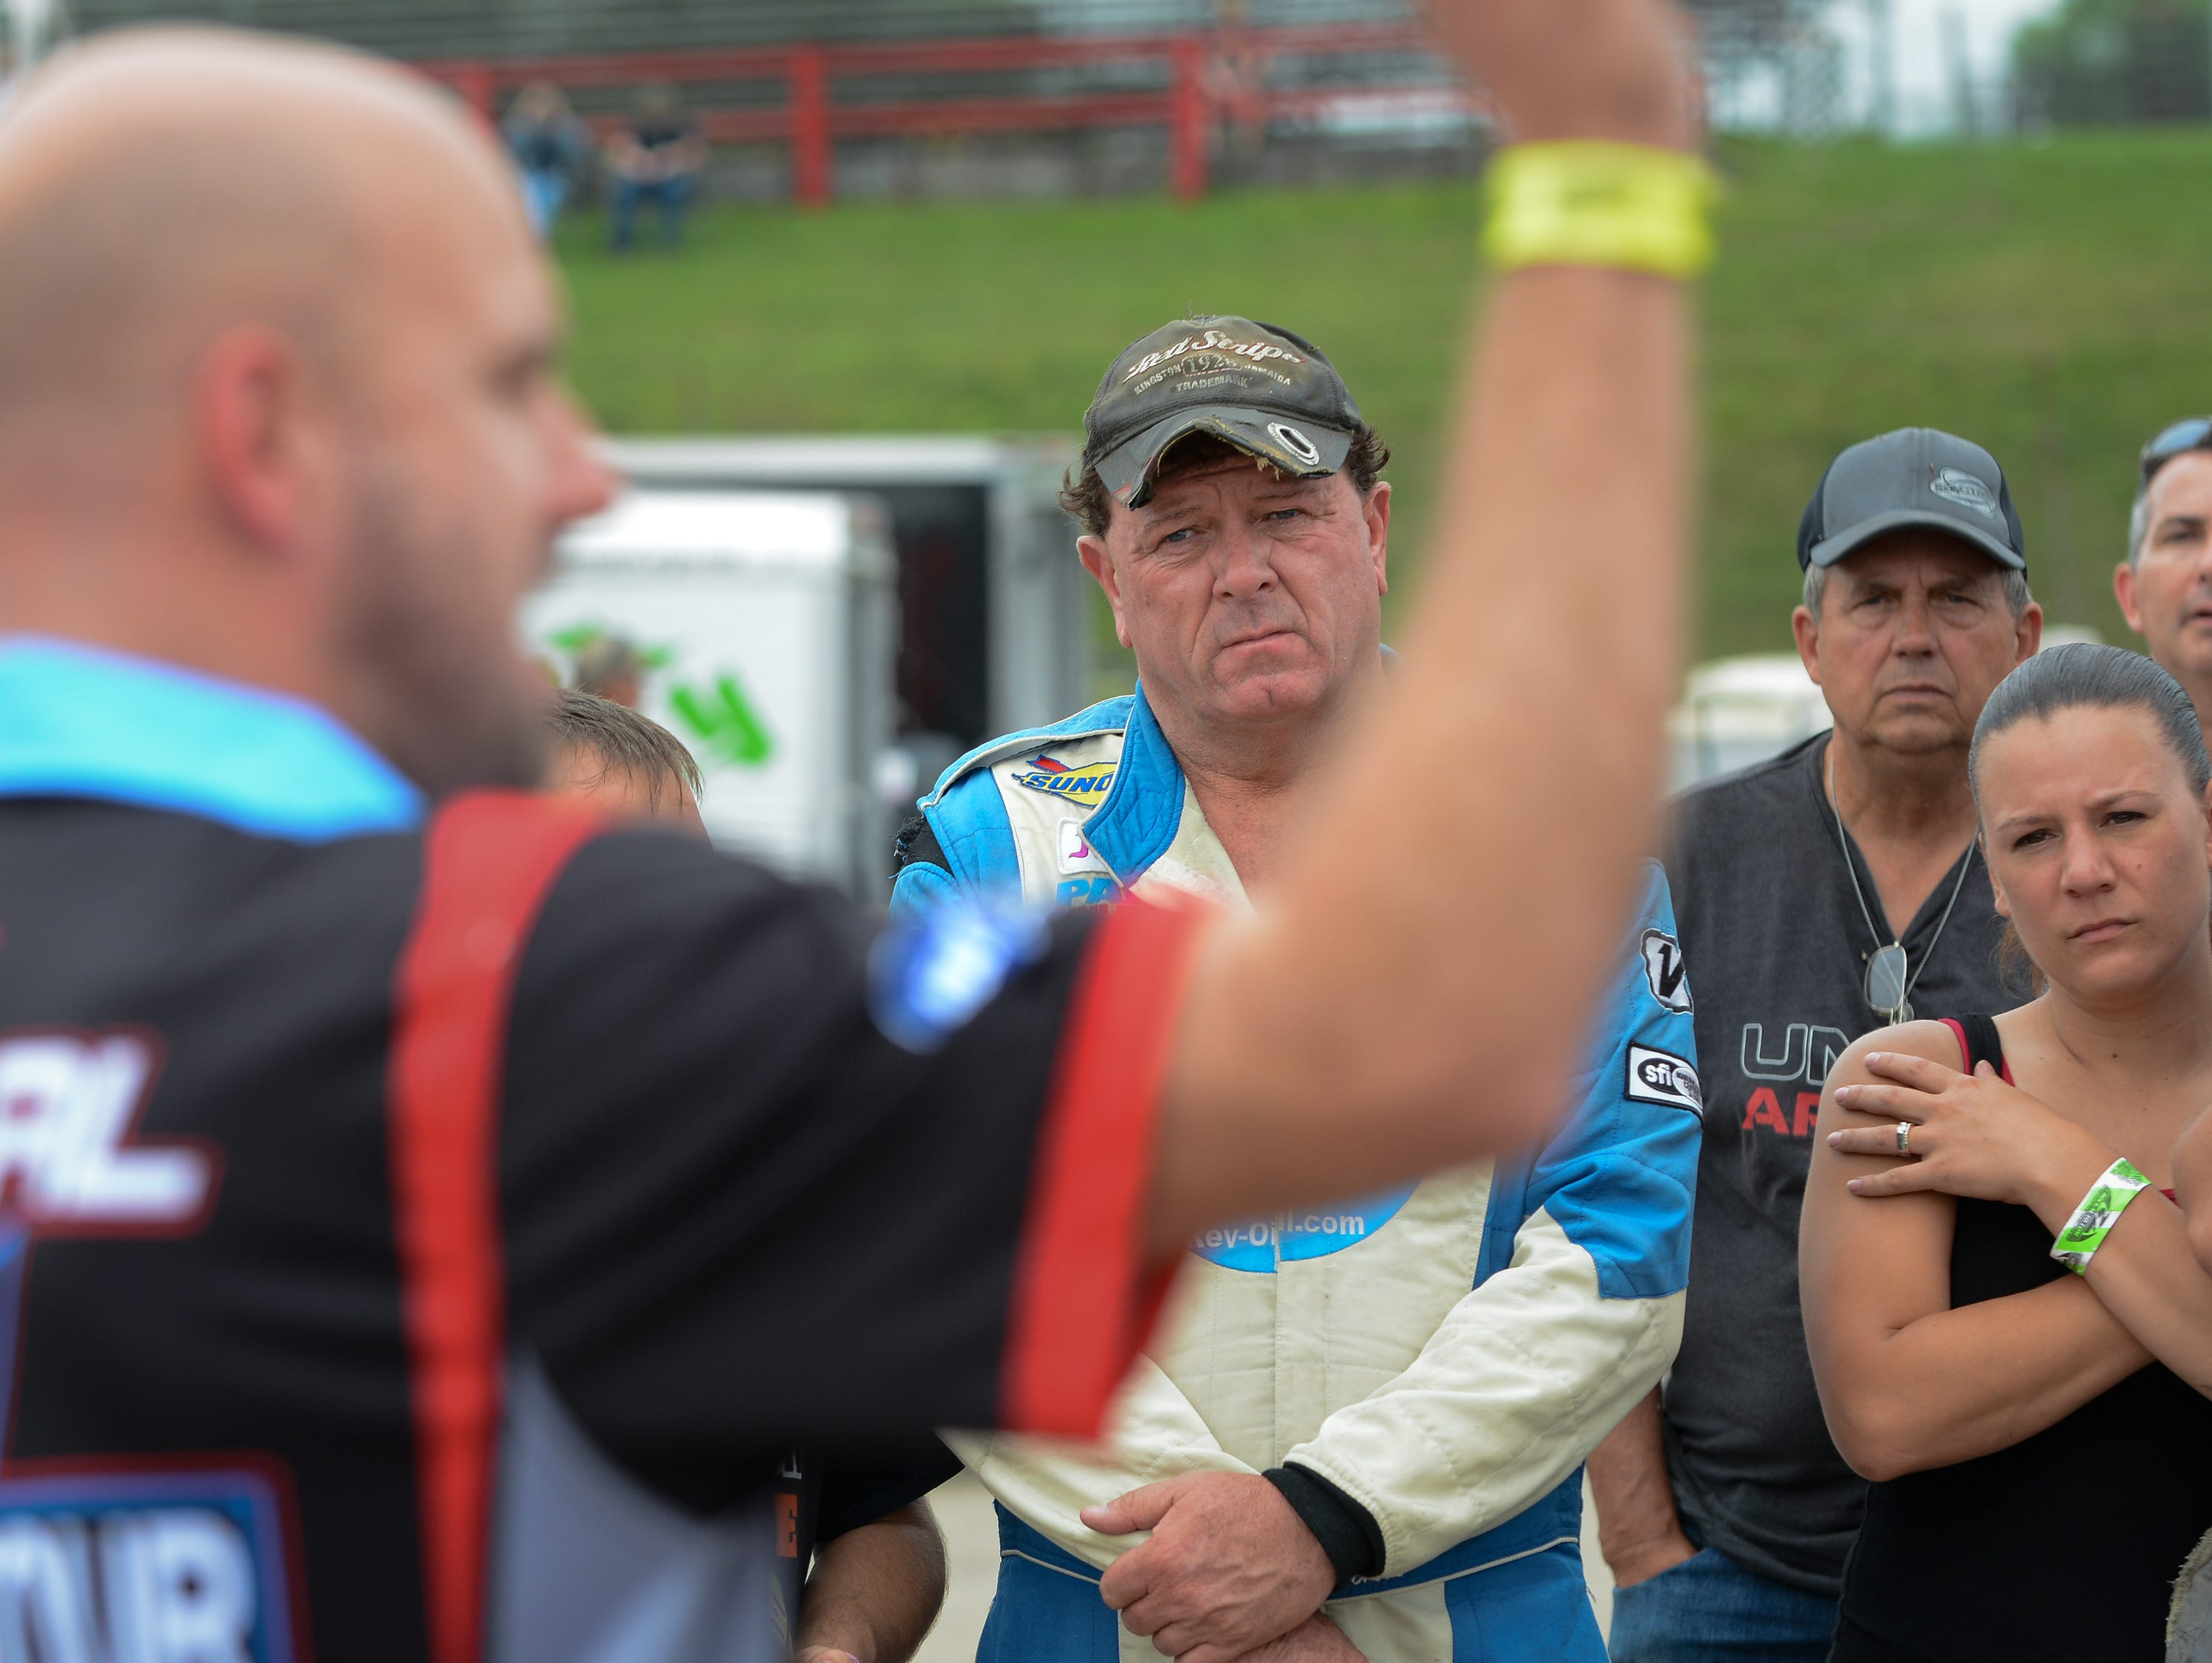 Rich Bickle listens to race director Nick Schumacher during the drivers meeting before the ARCA Midwest Tour Dixieland 250 on Tuesday, August 7, 2018, at Wisconsin International Raceway in Kaukauna, Wis.